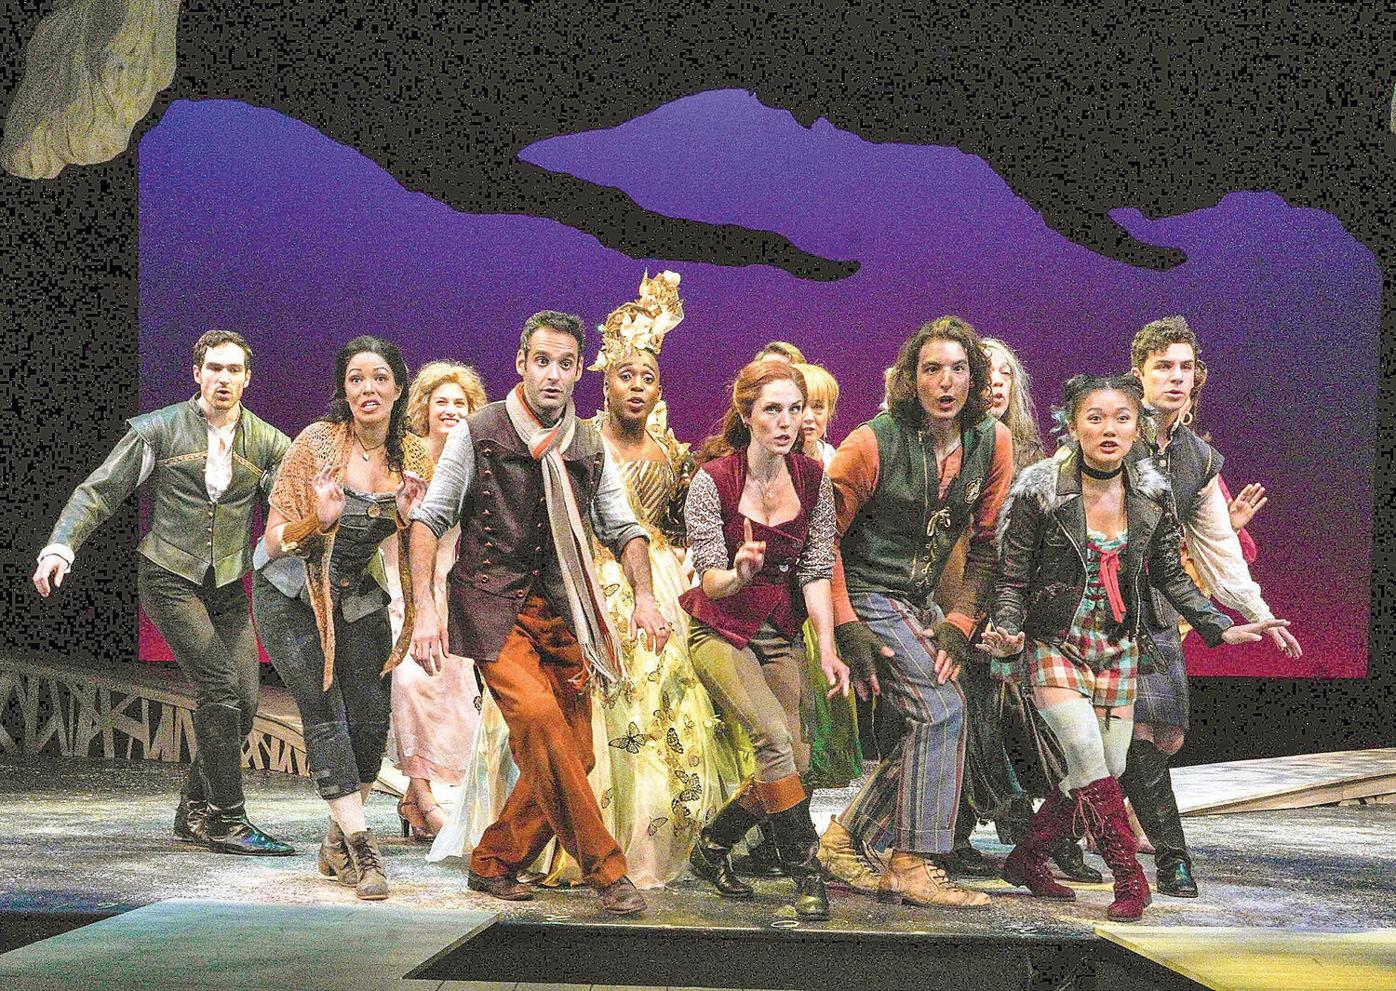 Barrington Stage Company journeys 'Into the Woods' and comes out a winner